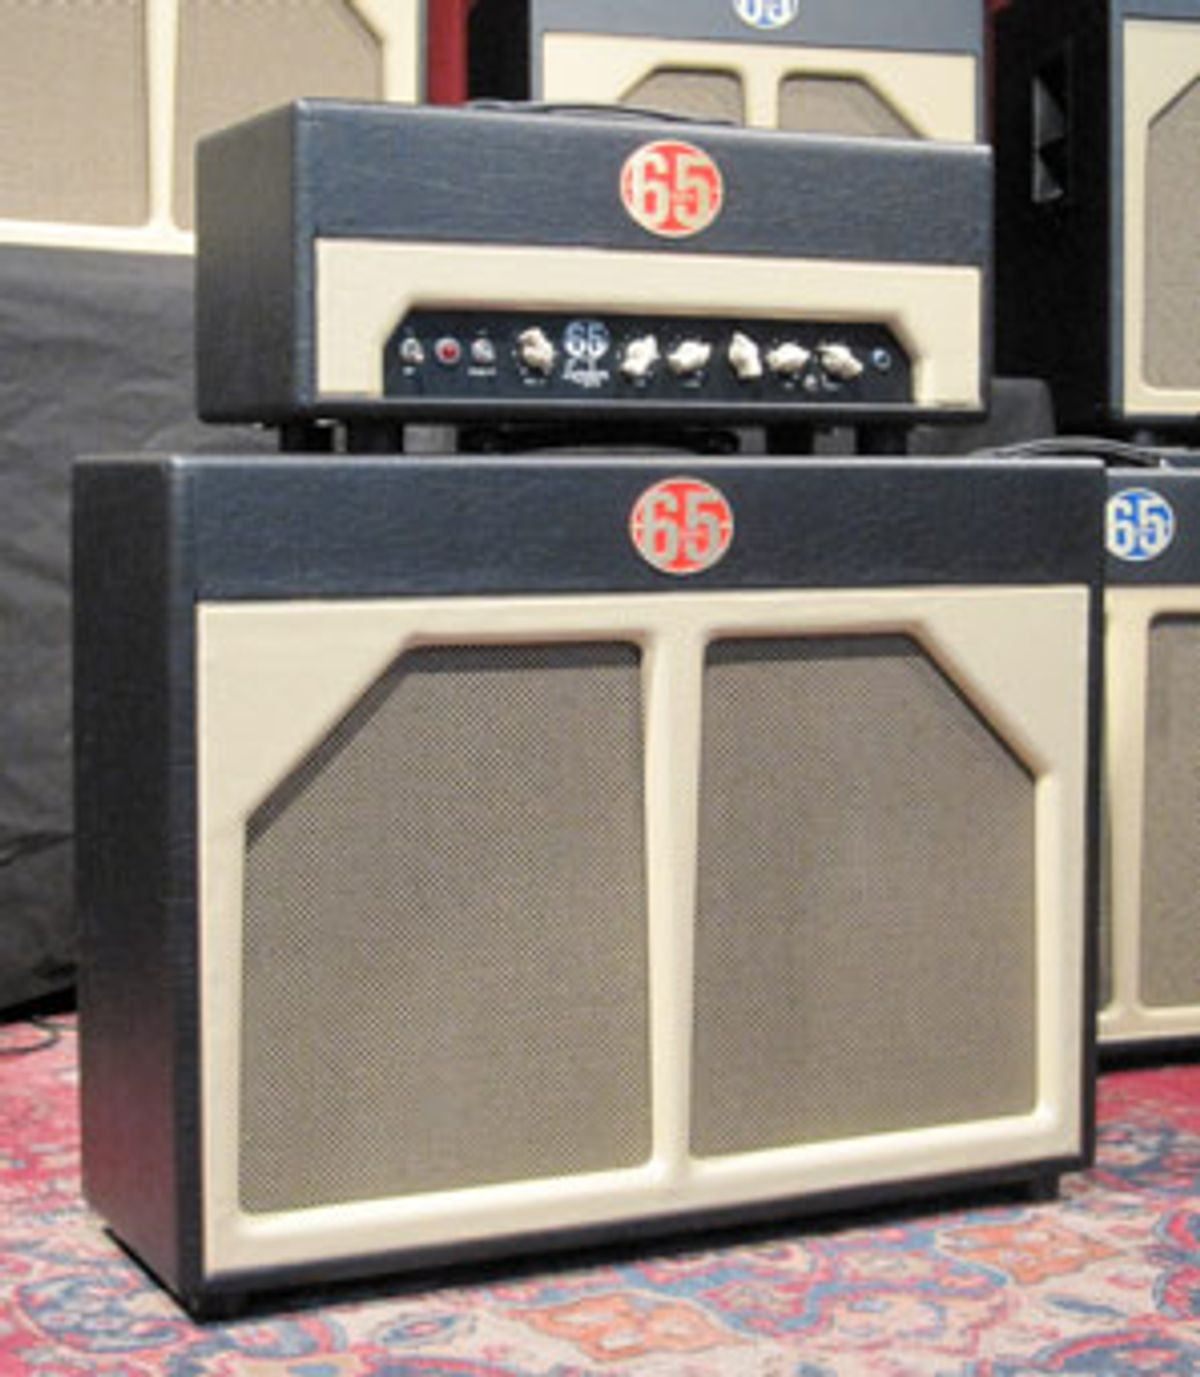 65Amps Introduces Red Line with London Pro